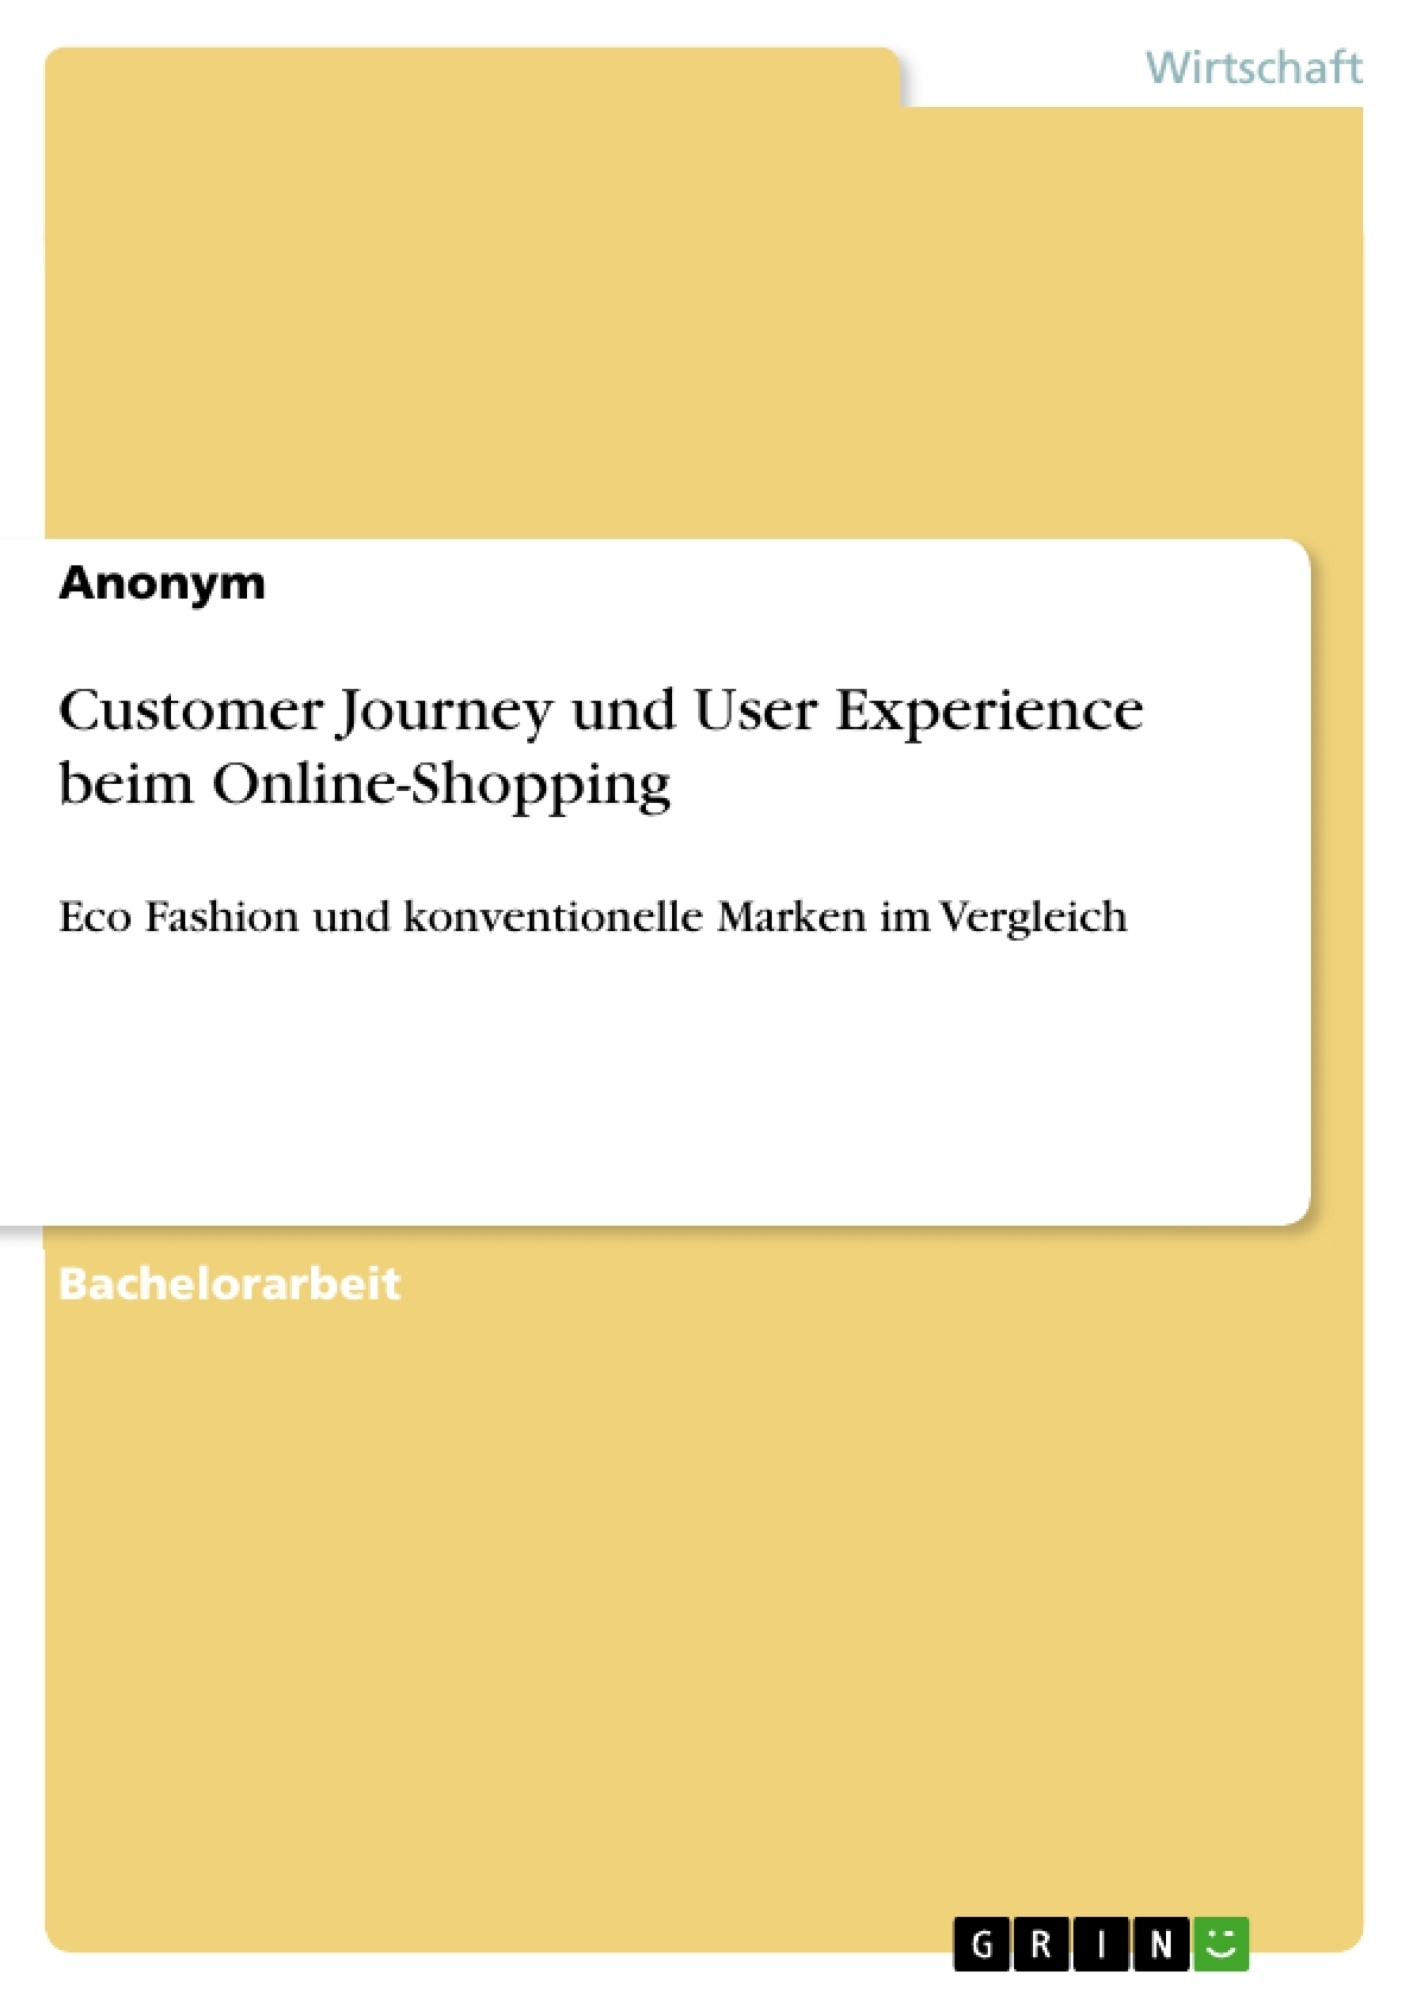 Titel: Customer Journey und User Experience beim Online-Shopping